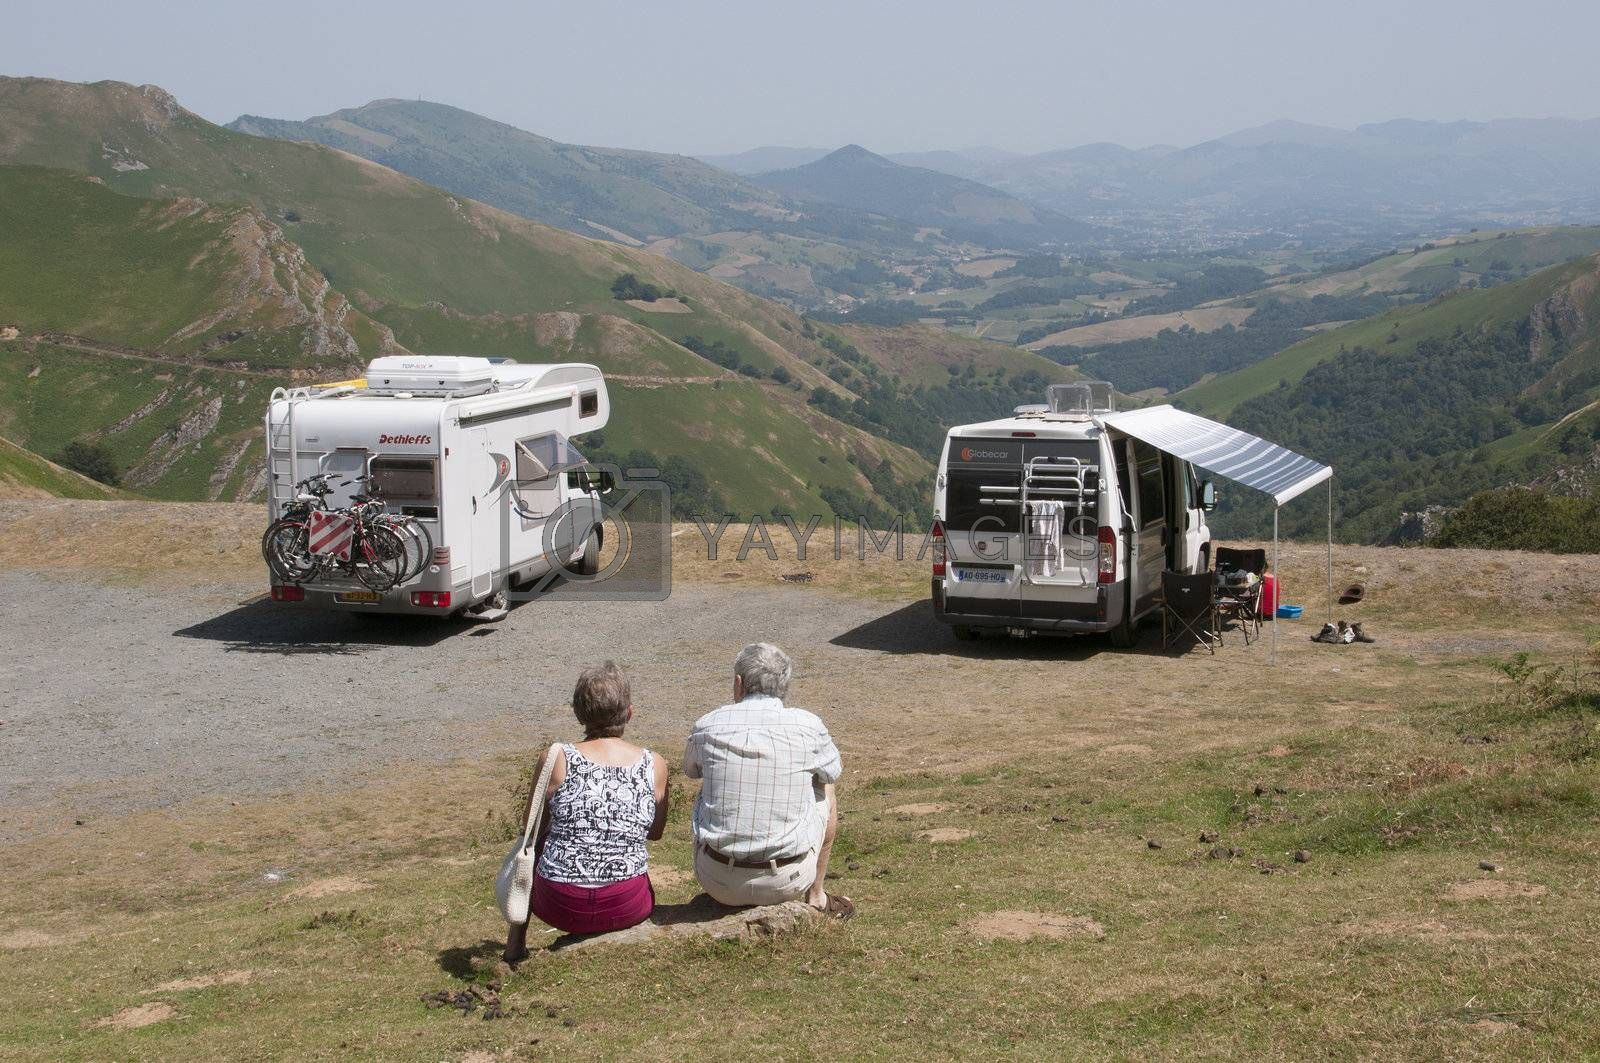 Motorhomes in the Pyrenees National Park southwest France by Peter t